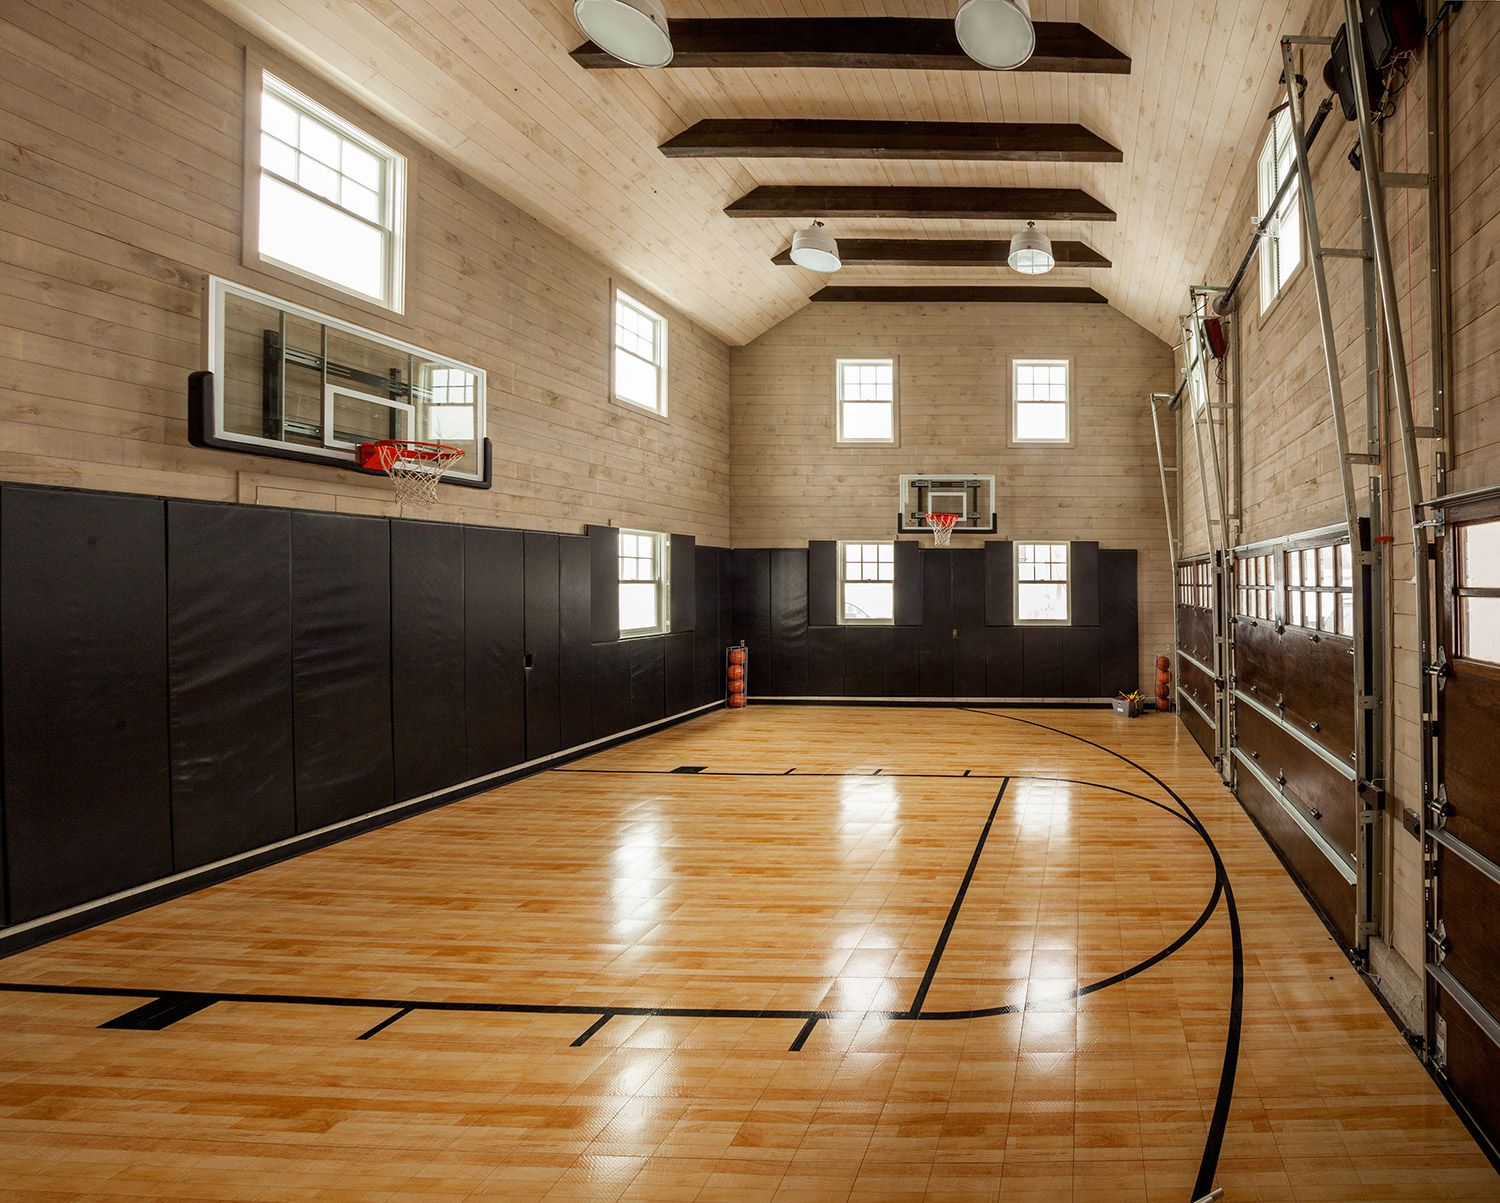 New Canaan Residence 5 Michael Smith Architects Indoor Sports Court Home Basketball Court House And Home Magazine